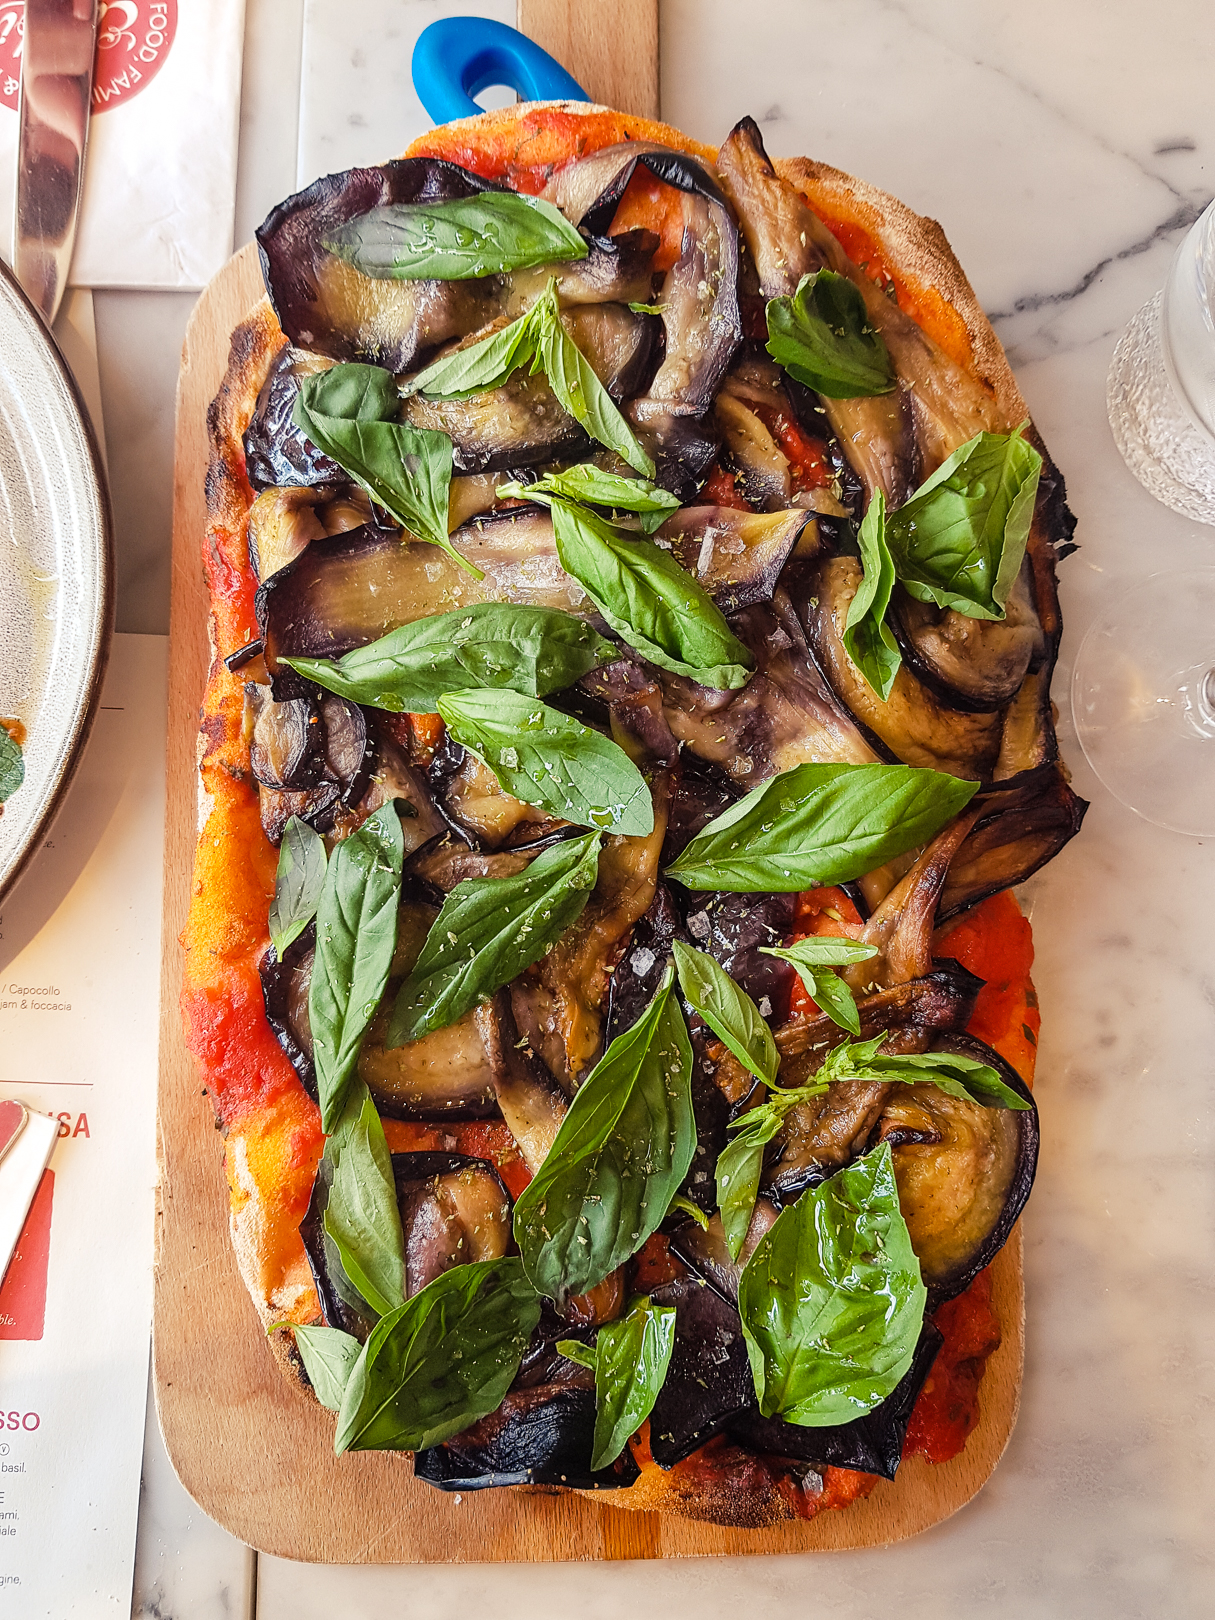 Roman-style pizza with aubergines and basil at Eusebi Deli Glasgow.